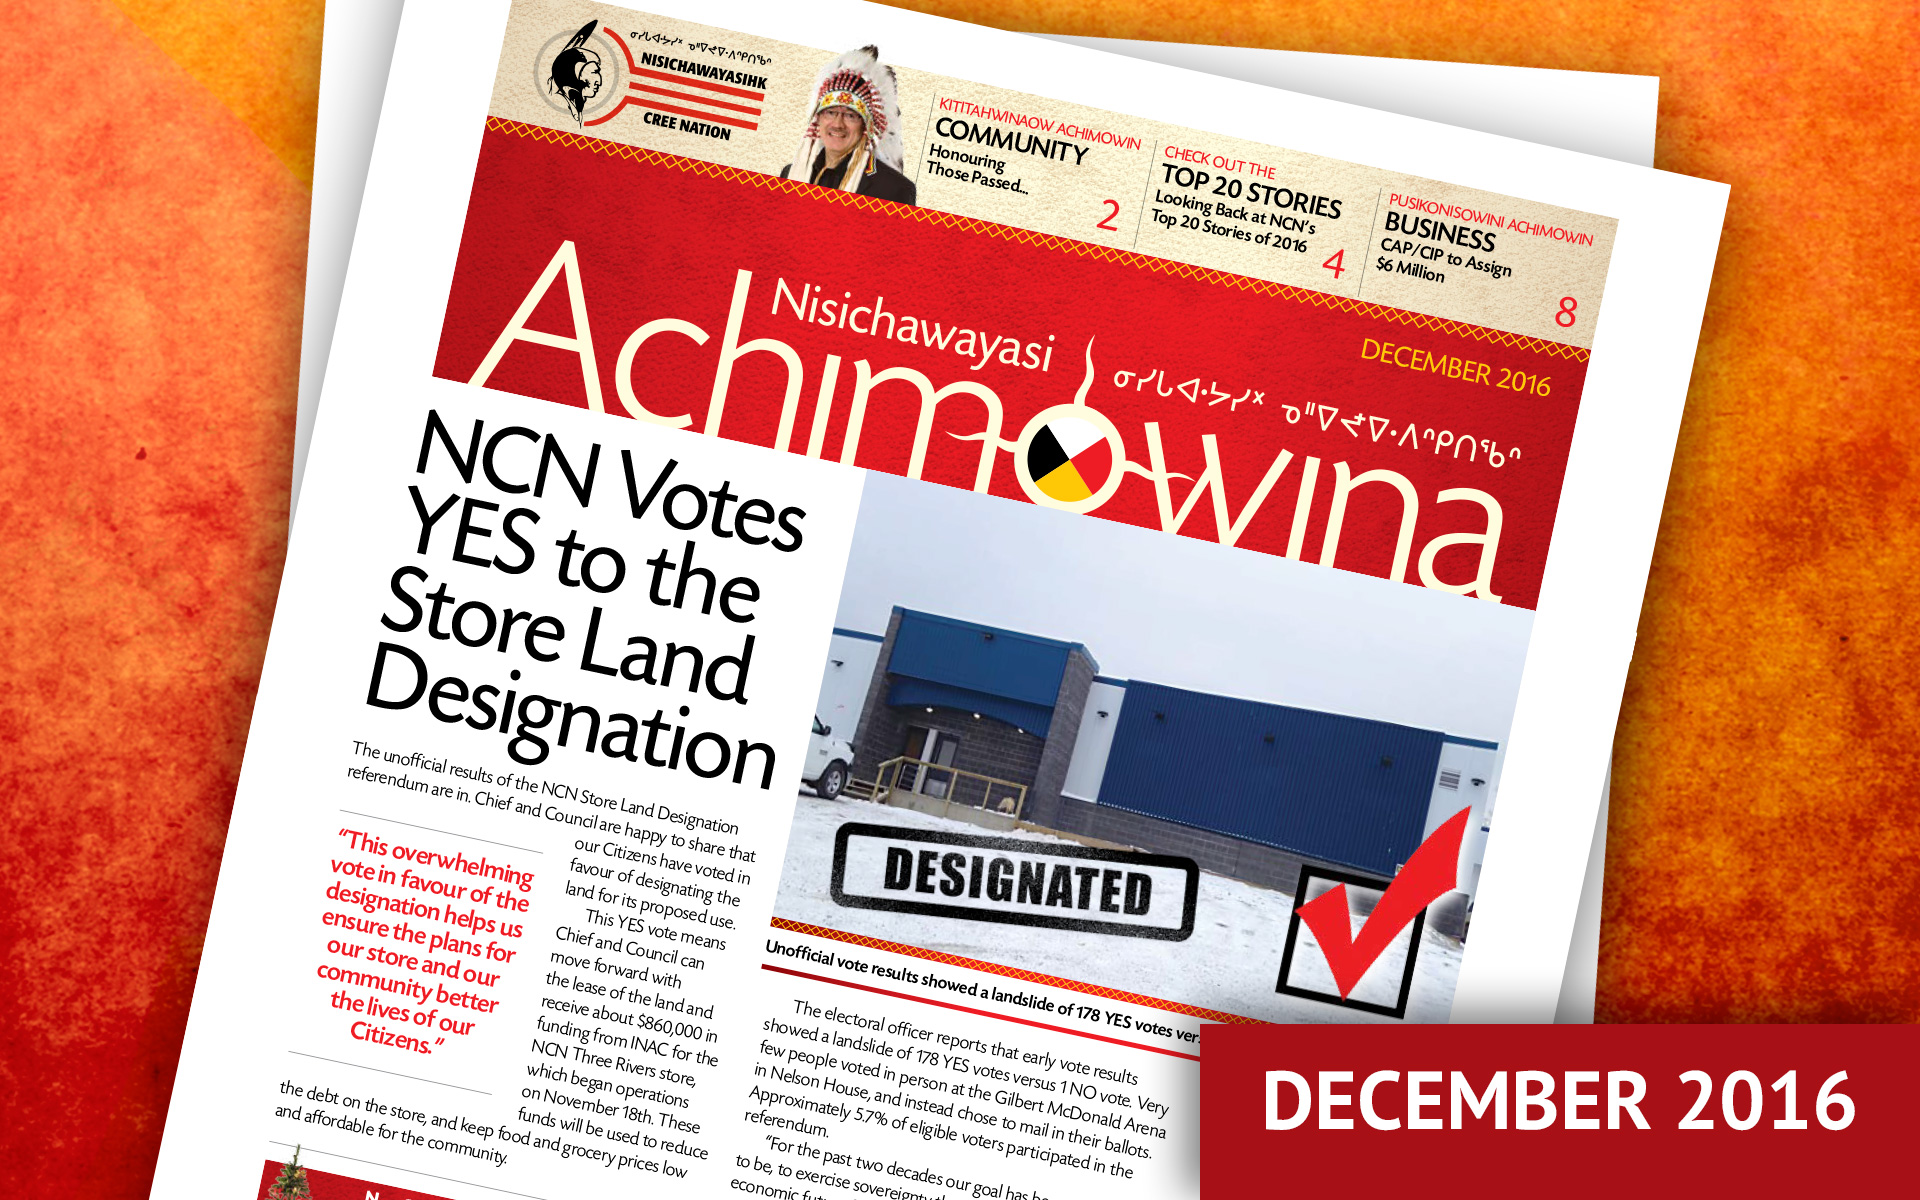 Achimowina December 2016 - NCN Votes YES to the Store Land Designation